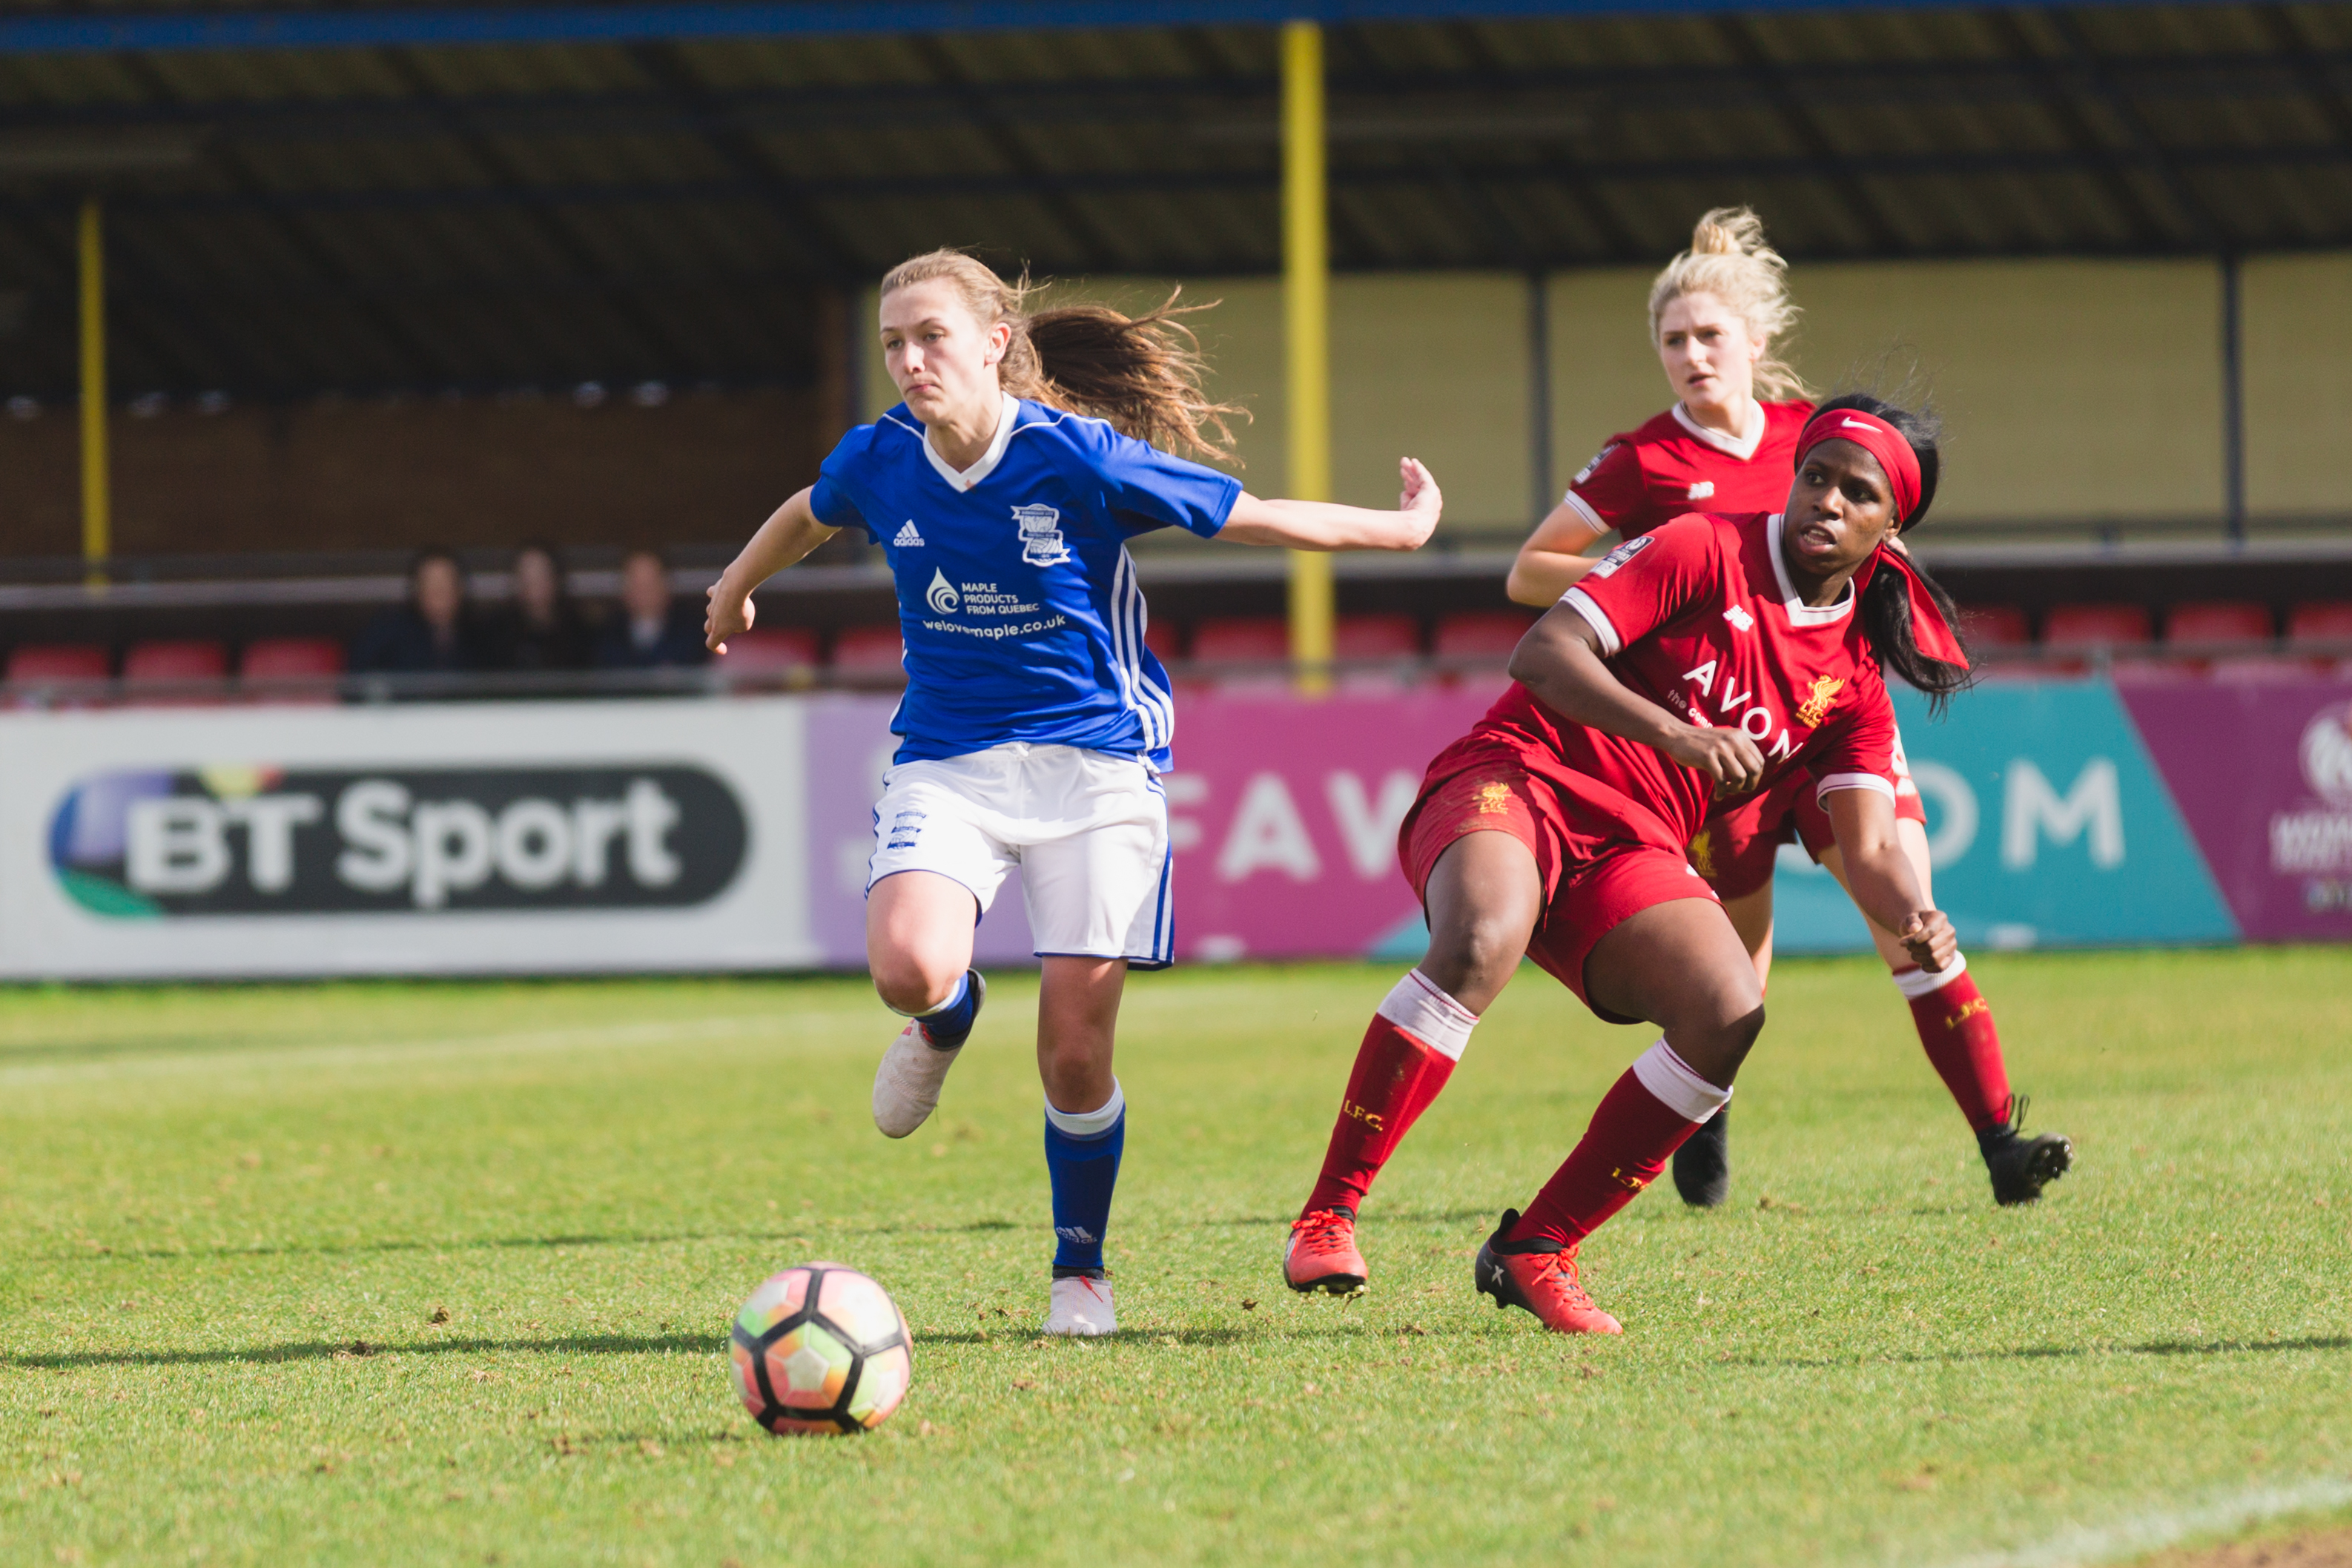 Birmingham City Ladies FC player chasing down the ball